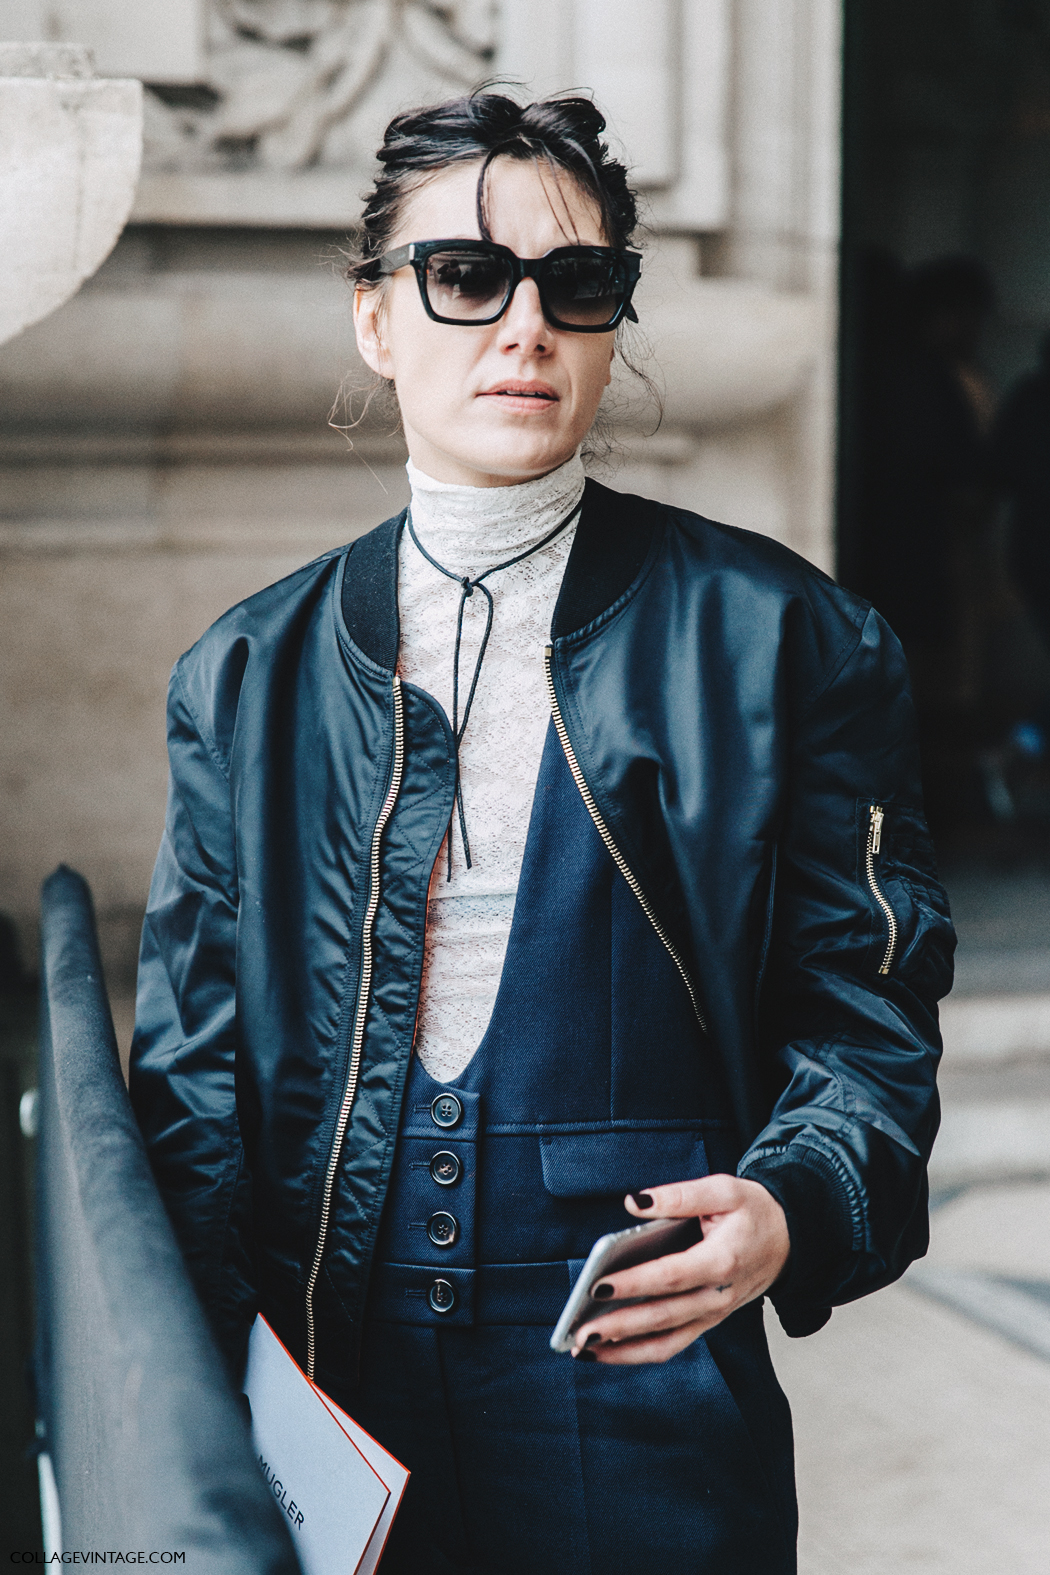 PFW-Paris_Fashion_Week_Fall_2016-Street_Style-Collage_Vintage-Sara_Marija_Saric-Bomber-Lace-